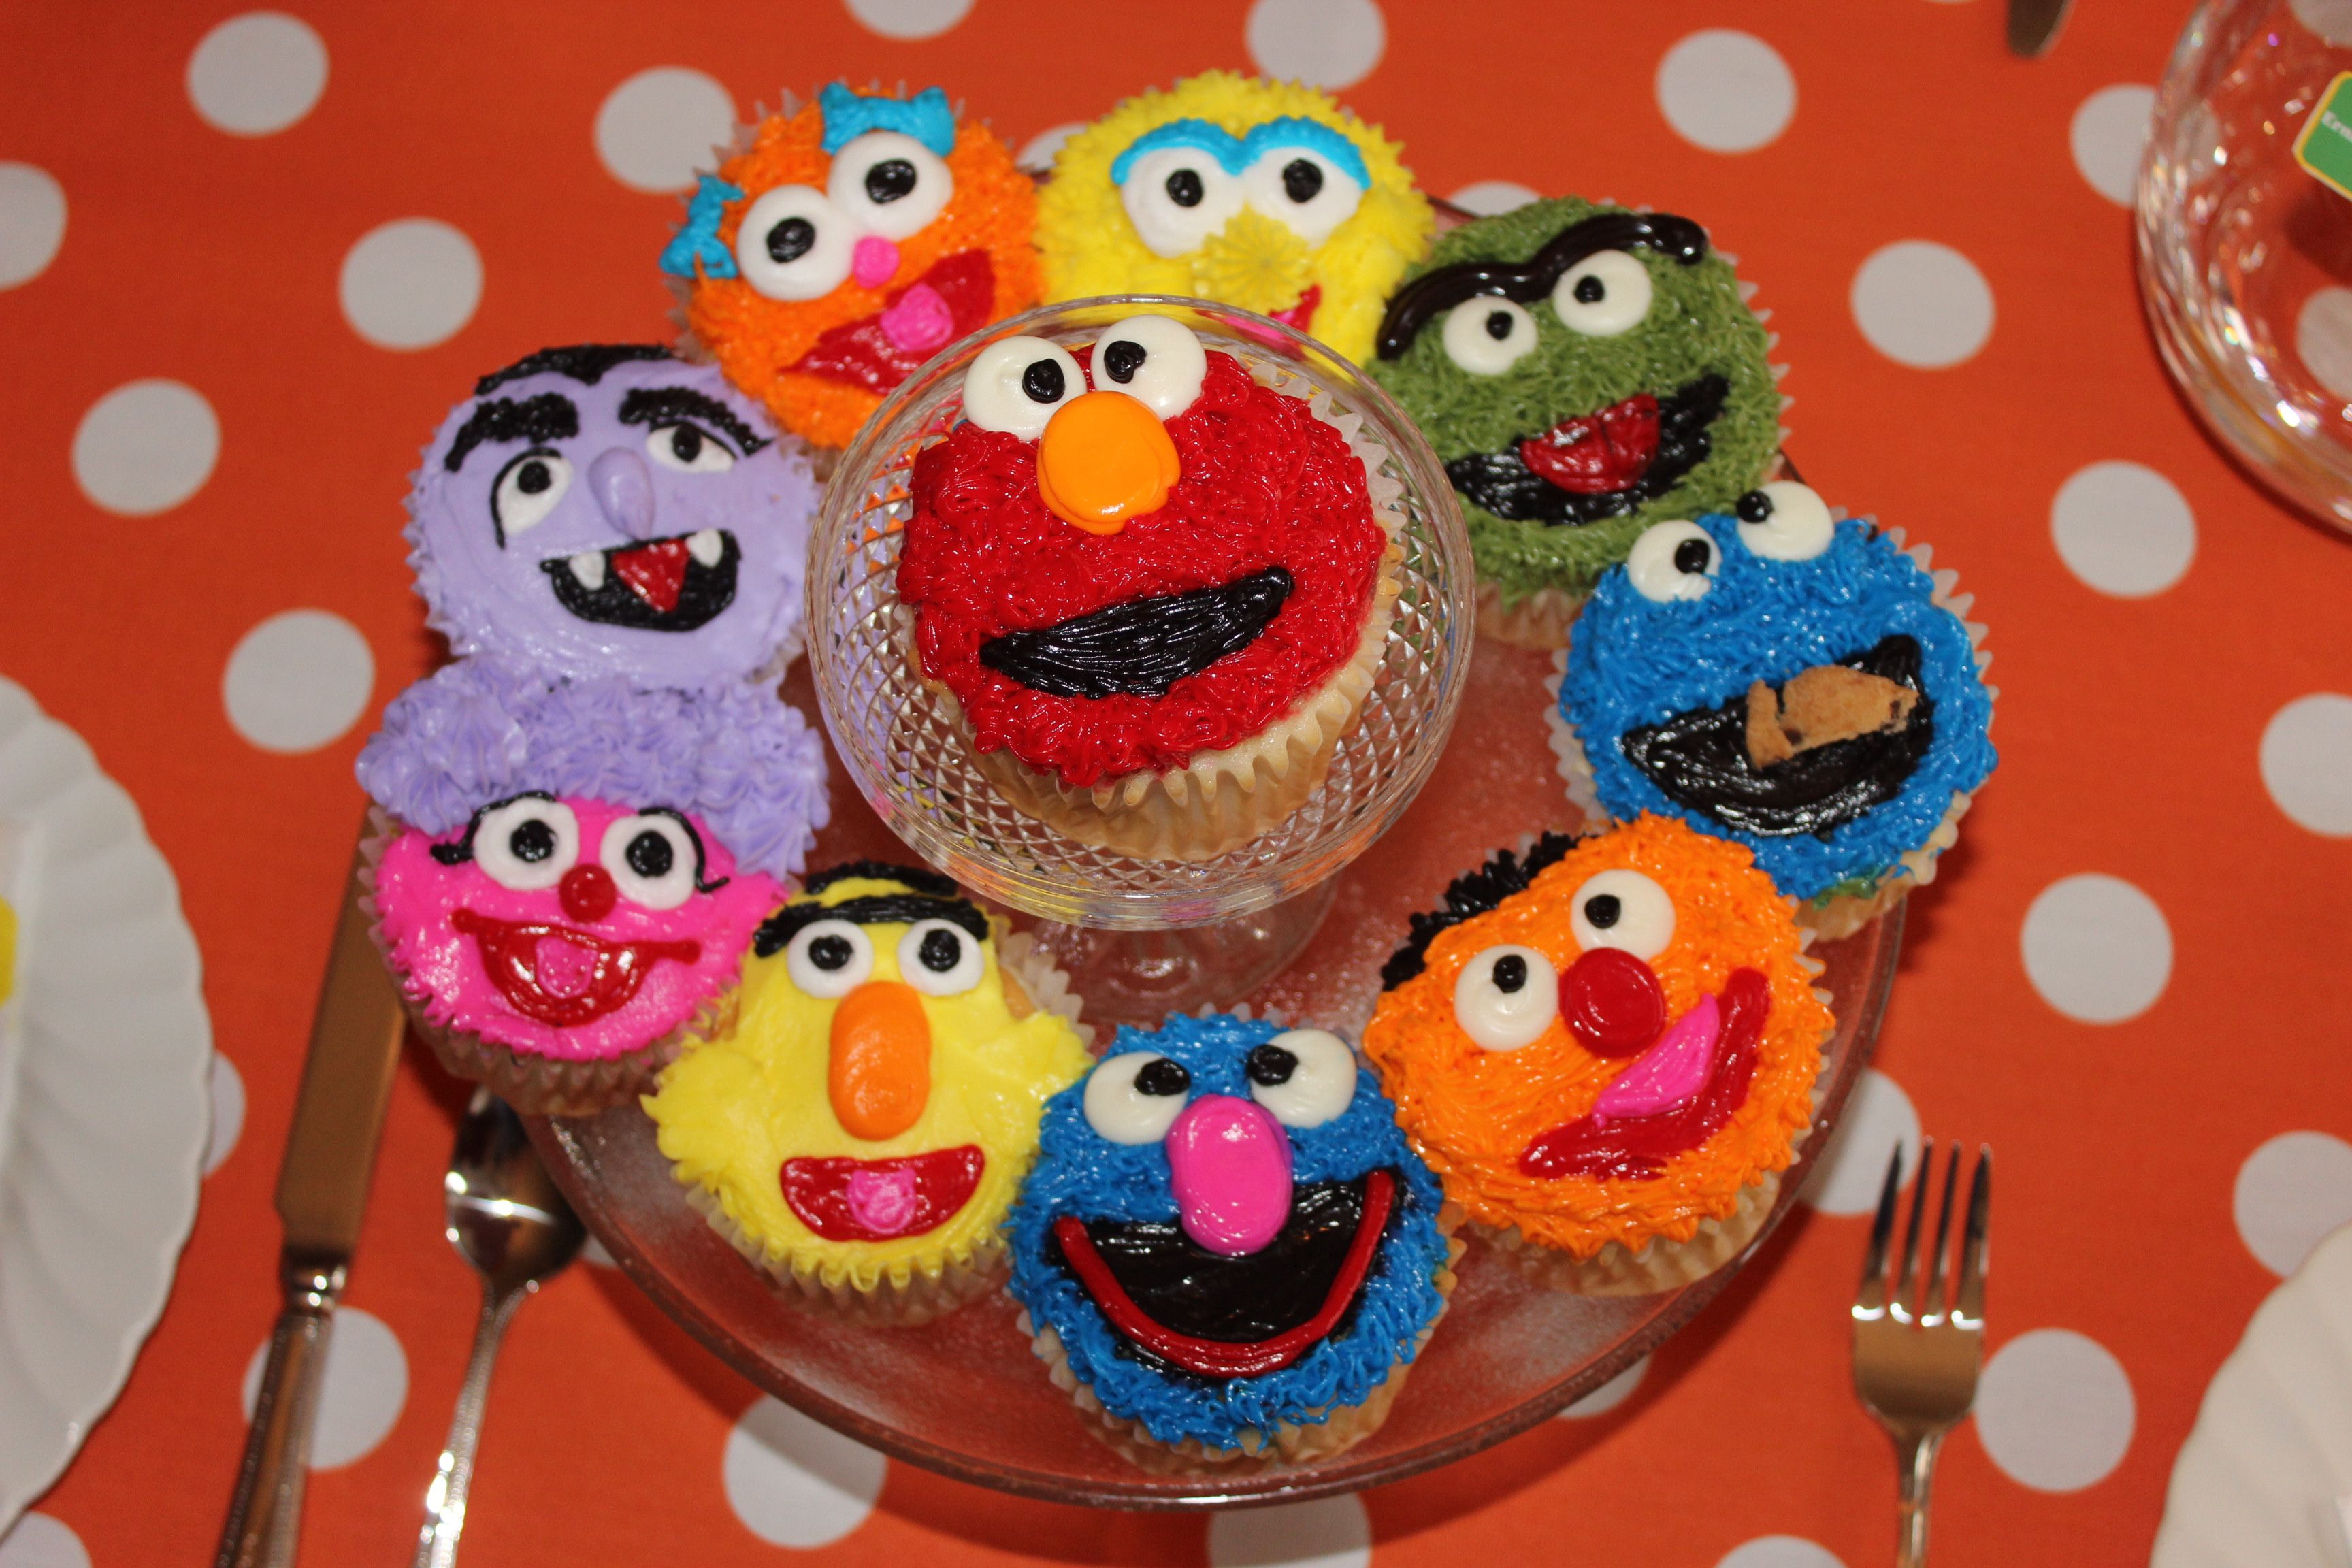 Second Birthday Party Sesame Street Party Gabe S Birthday Elmo Cupcakes And More In Lincoln Ne Elmo Cupcakes Sesame Street Party Sesame Street